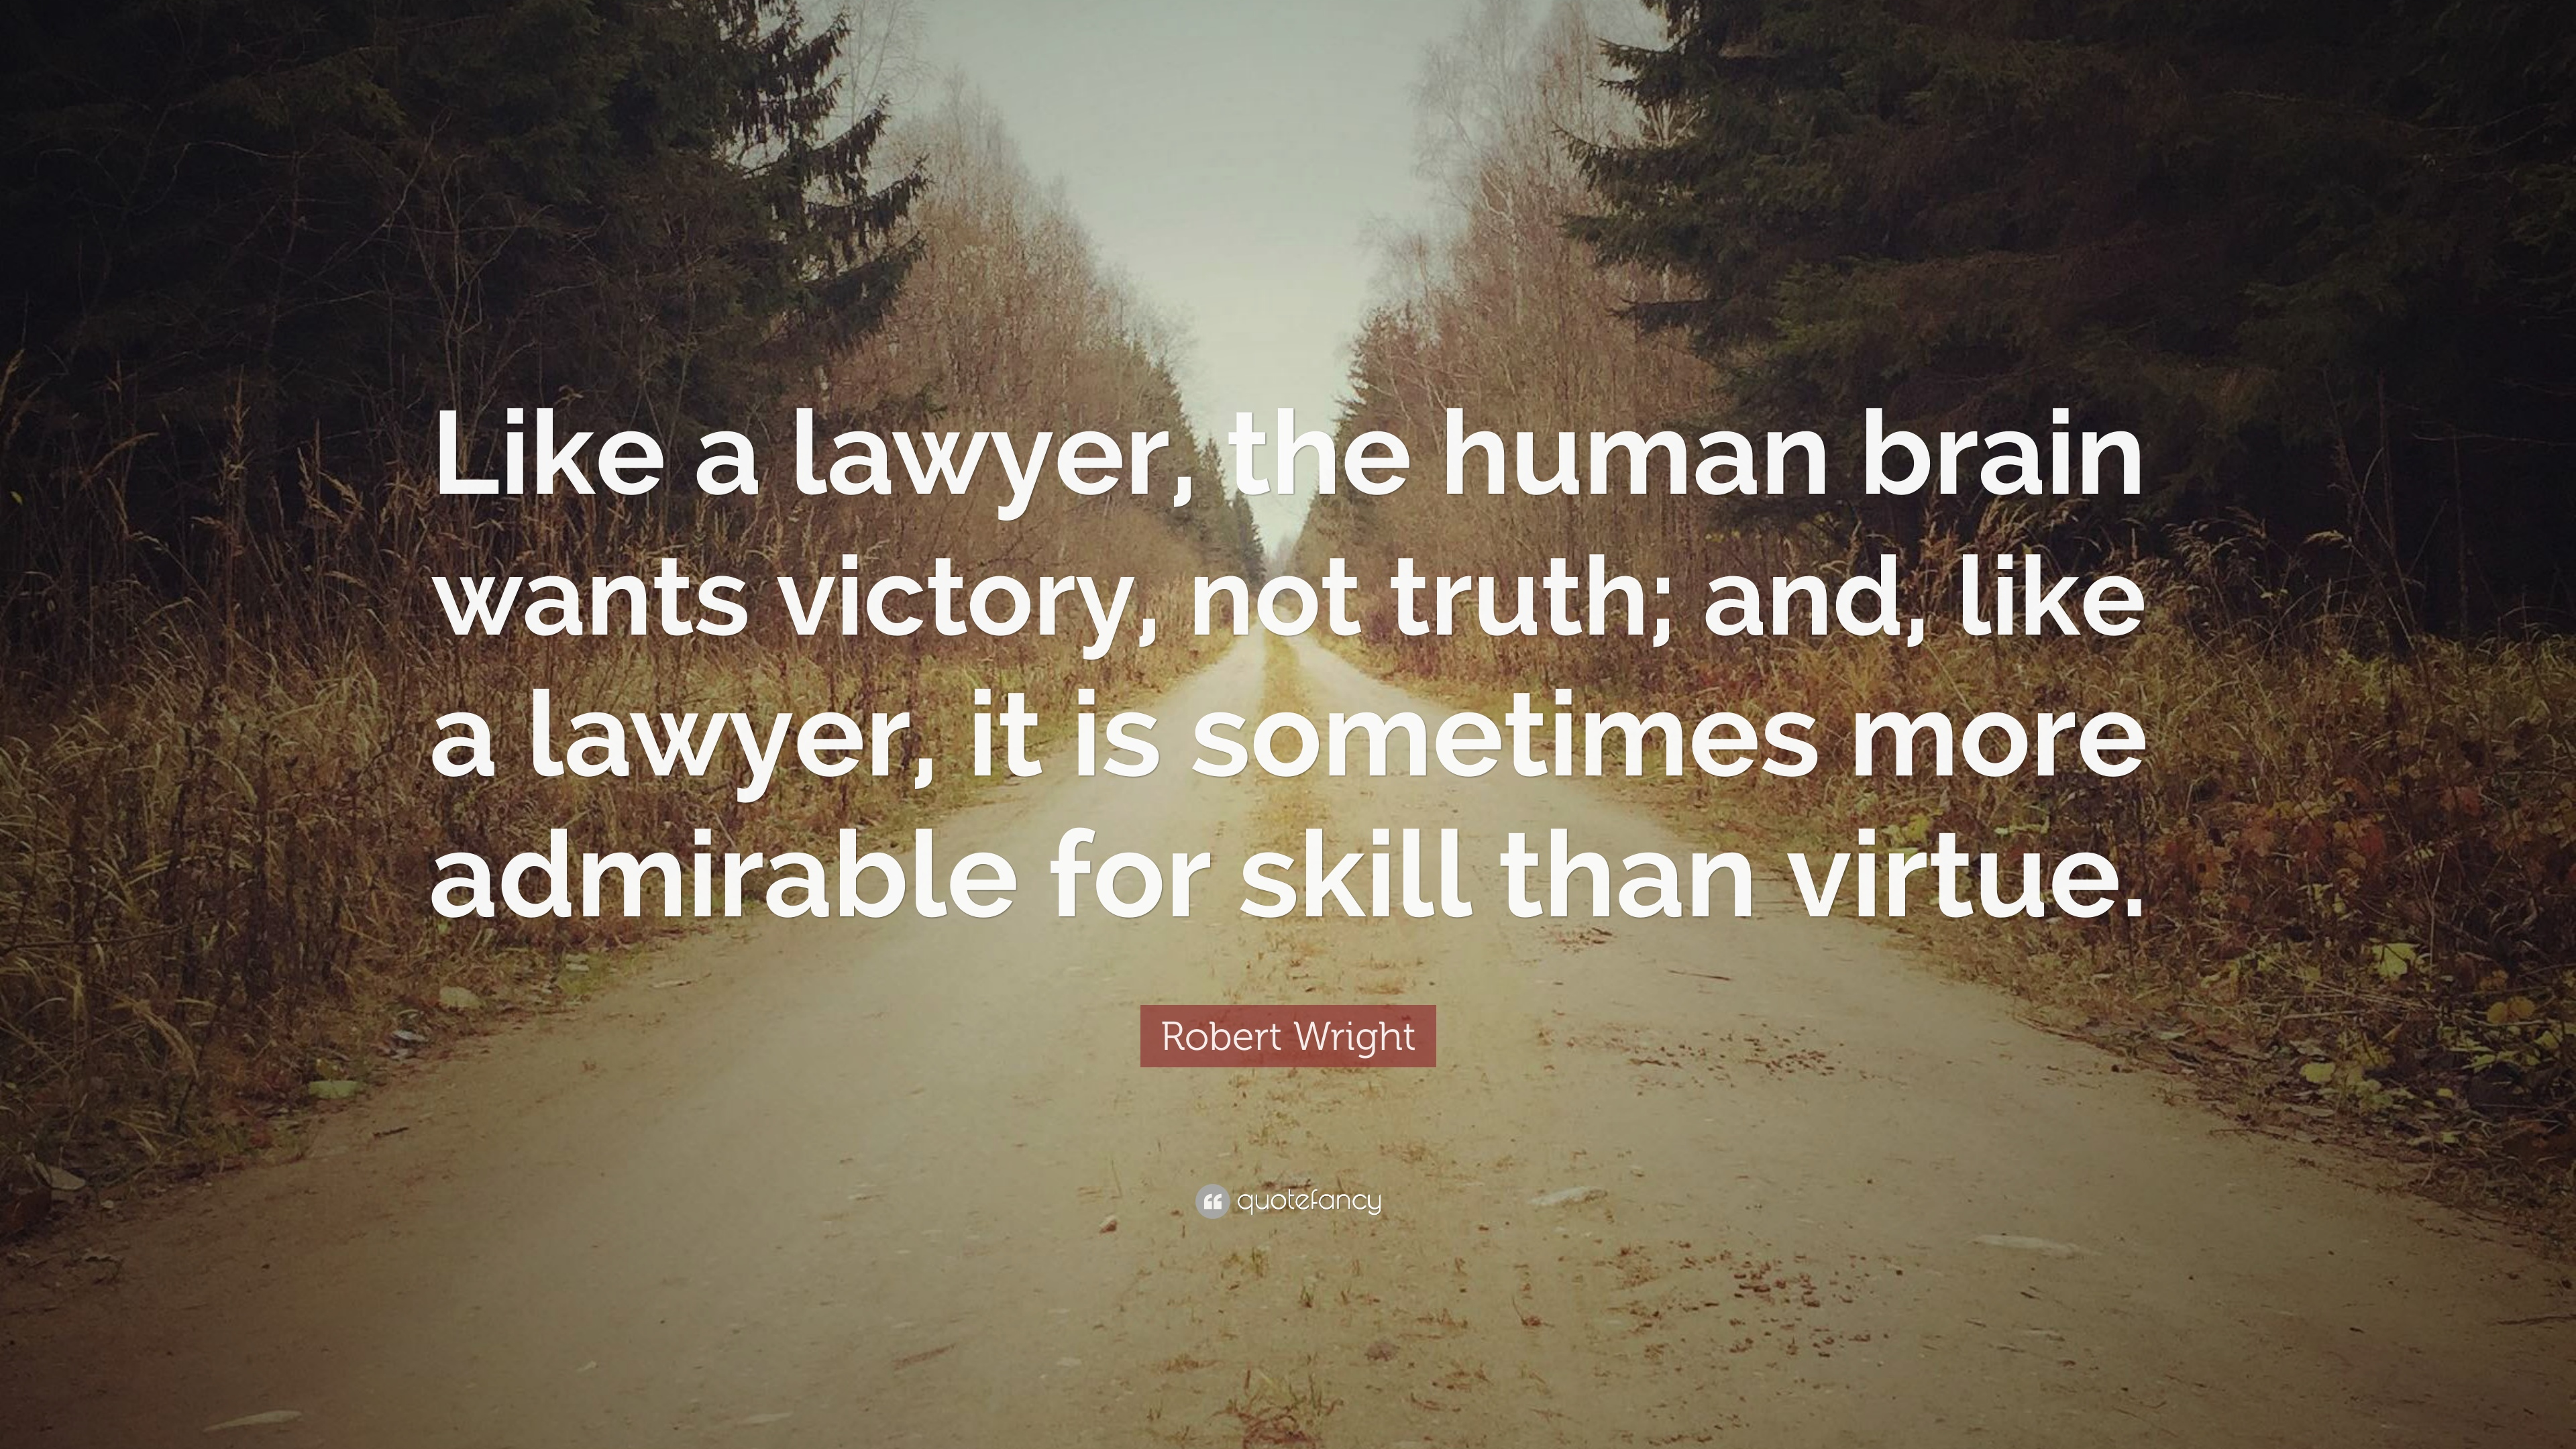 Robert Wright Quote: Like a lawyer, the human brain wants